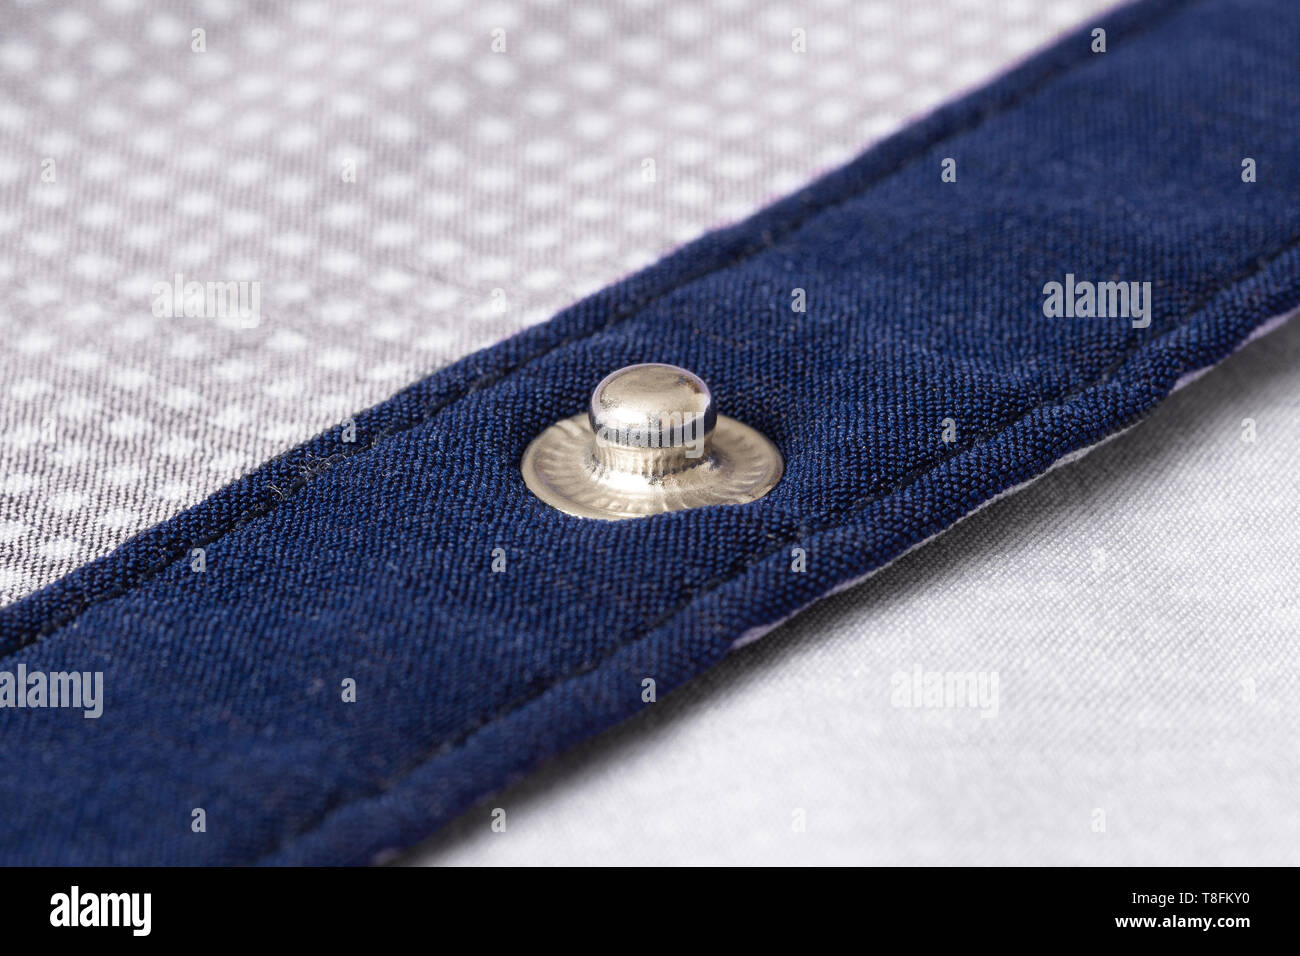 Press-stud (fastener) on blue shirt plank closeup. - Stock Image